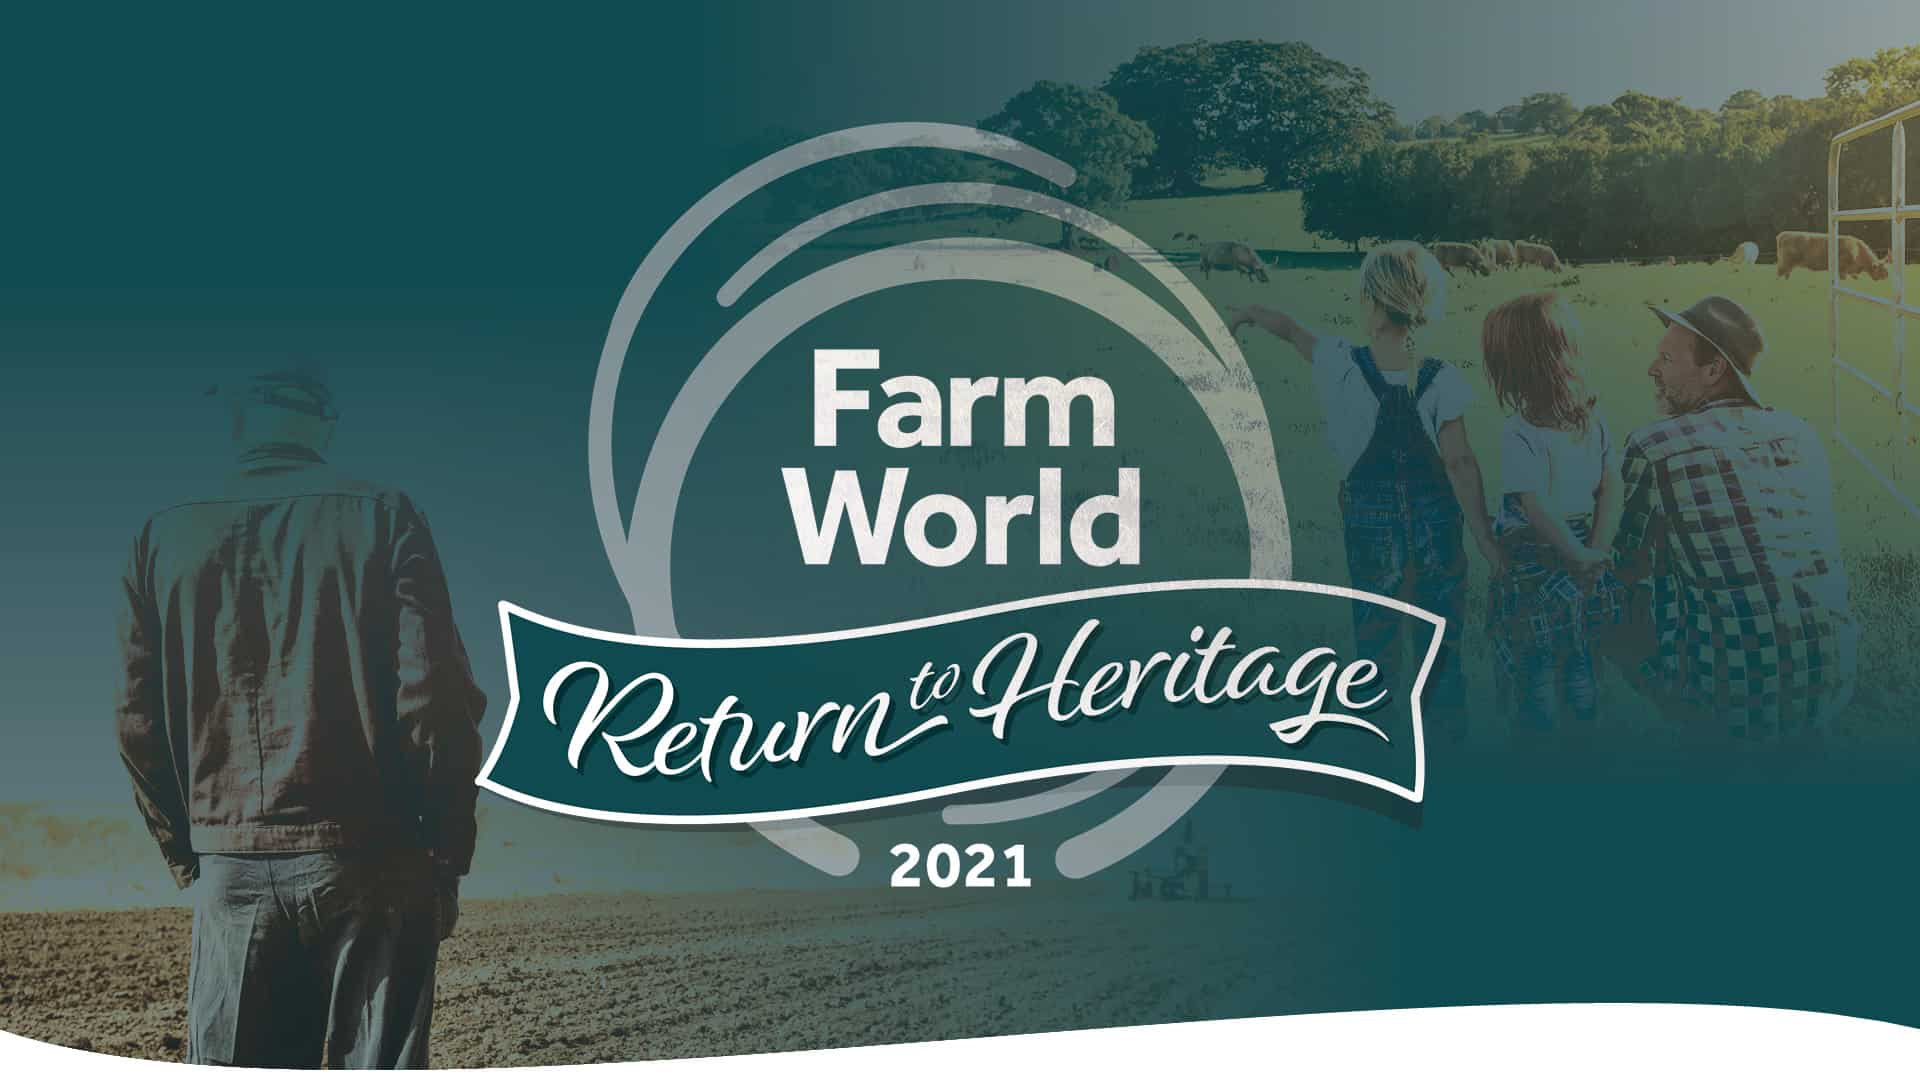 Farm World 2021